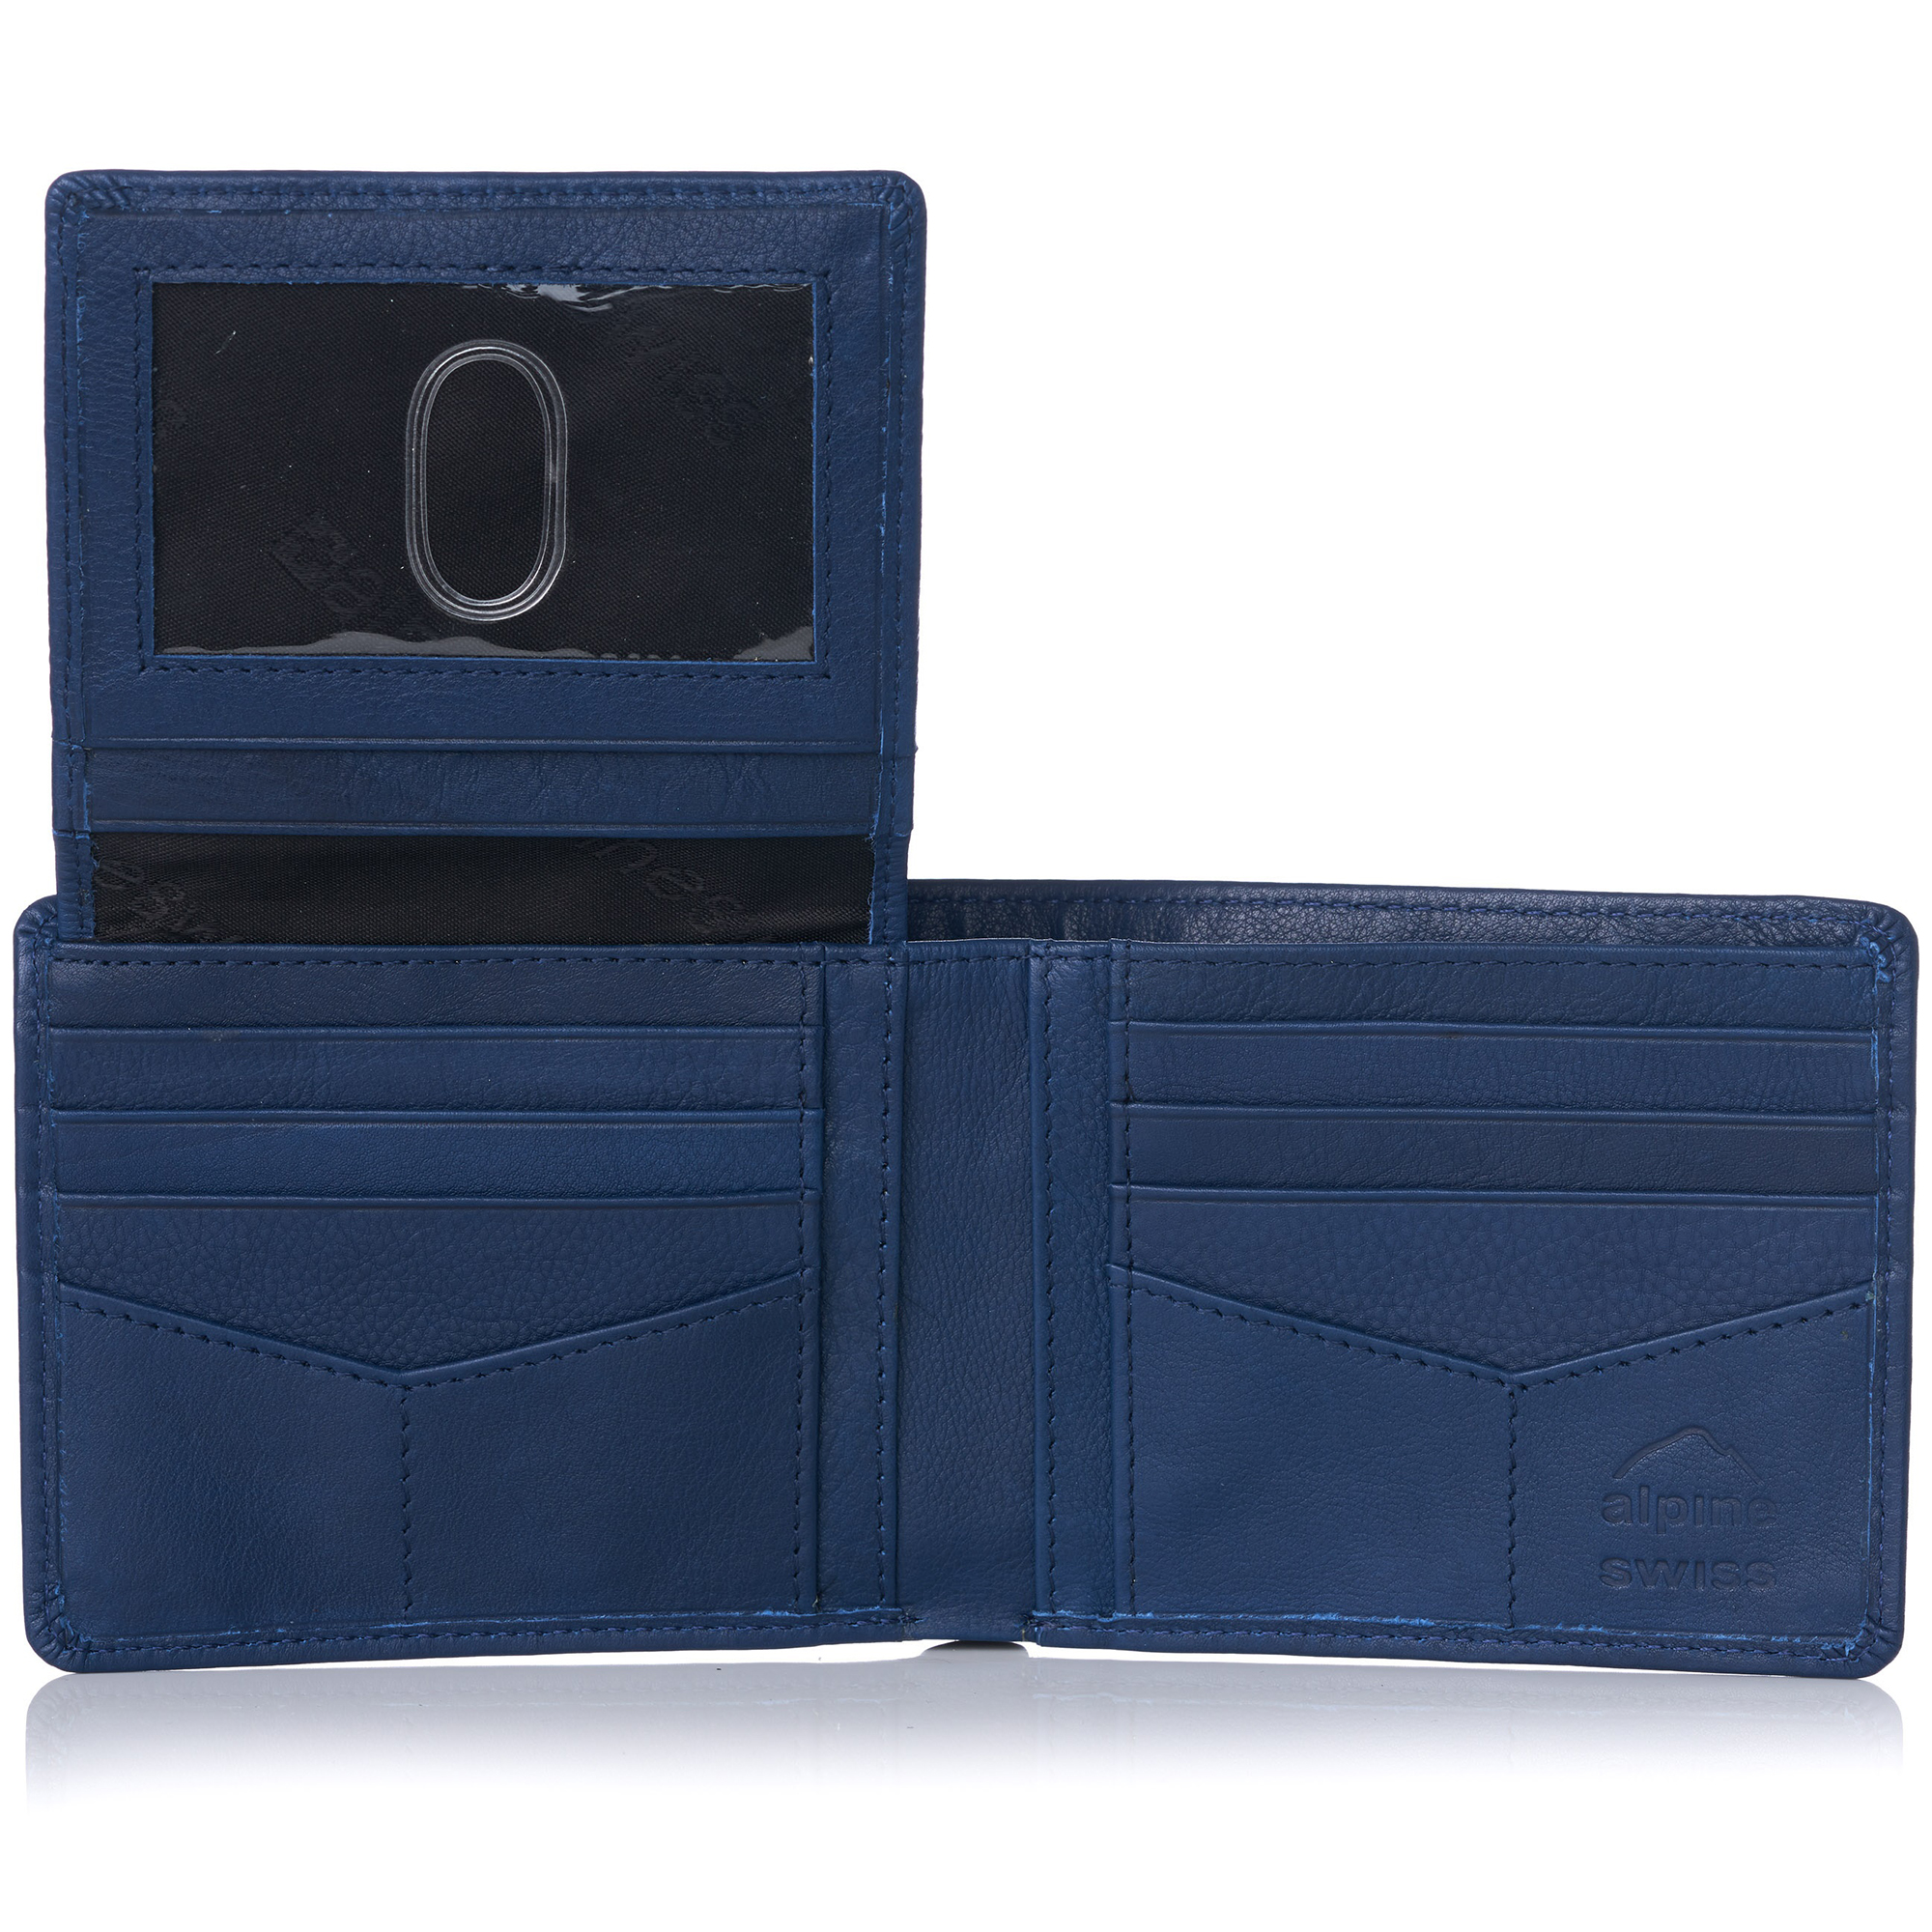 miniature 94 - Alpine-Swiss-RFID-Mens-Wallet-Deluxe-Capacity-Passcase-Bifold-Two-Bill-Sections